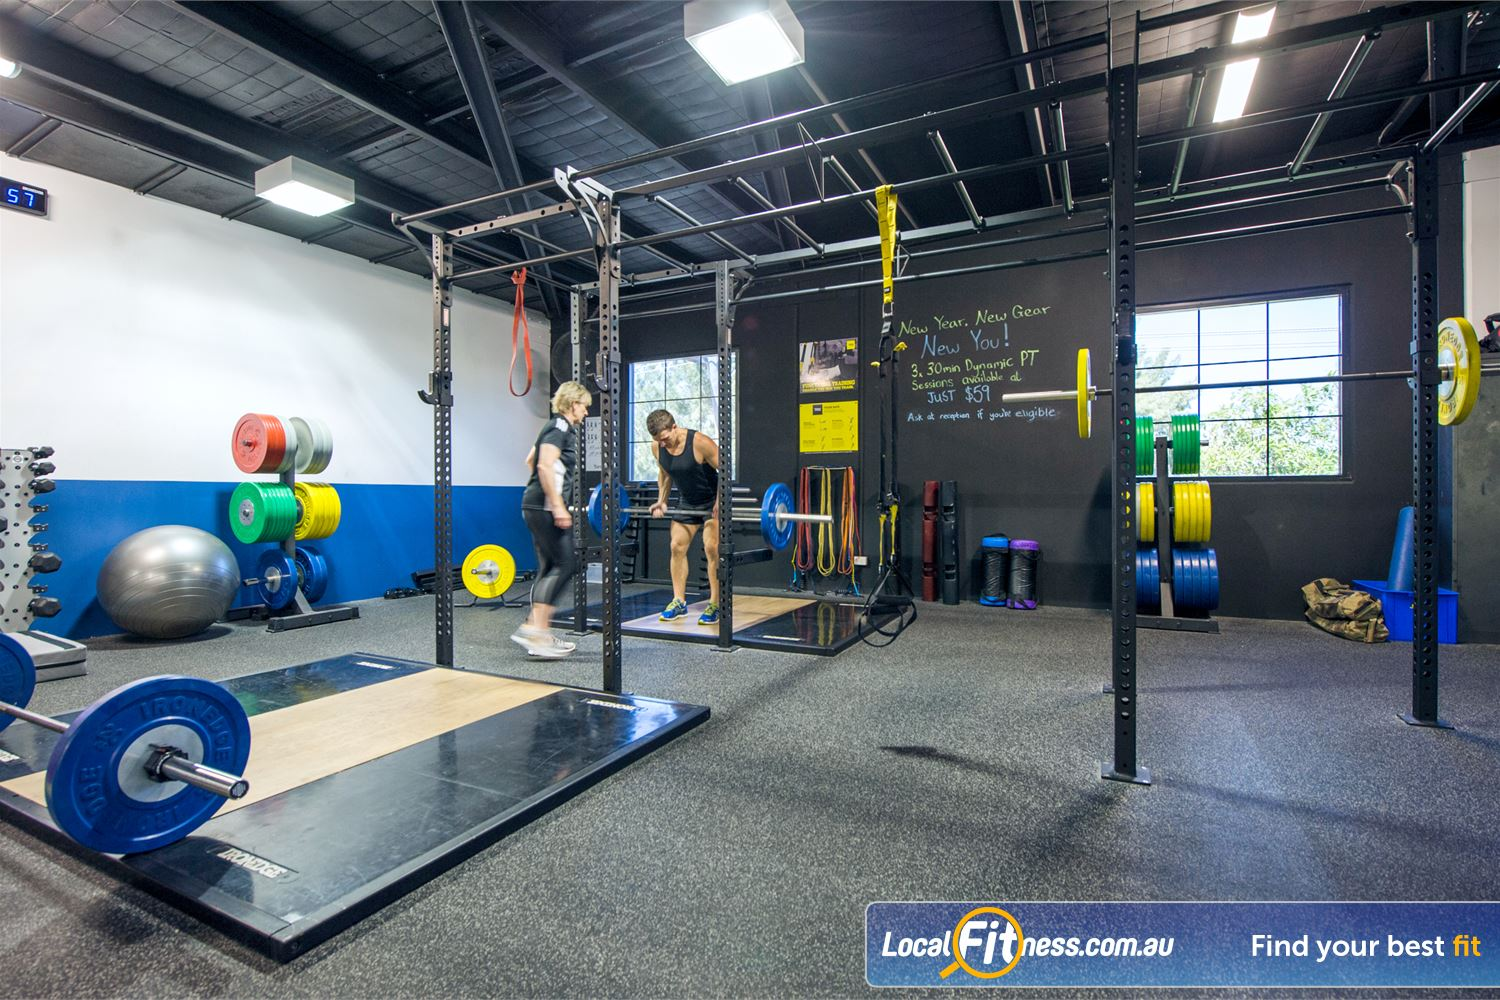 Goodlife Health Clubs Mount Lawley The fully equipped Mount Lawley functional training zone.